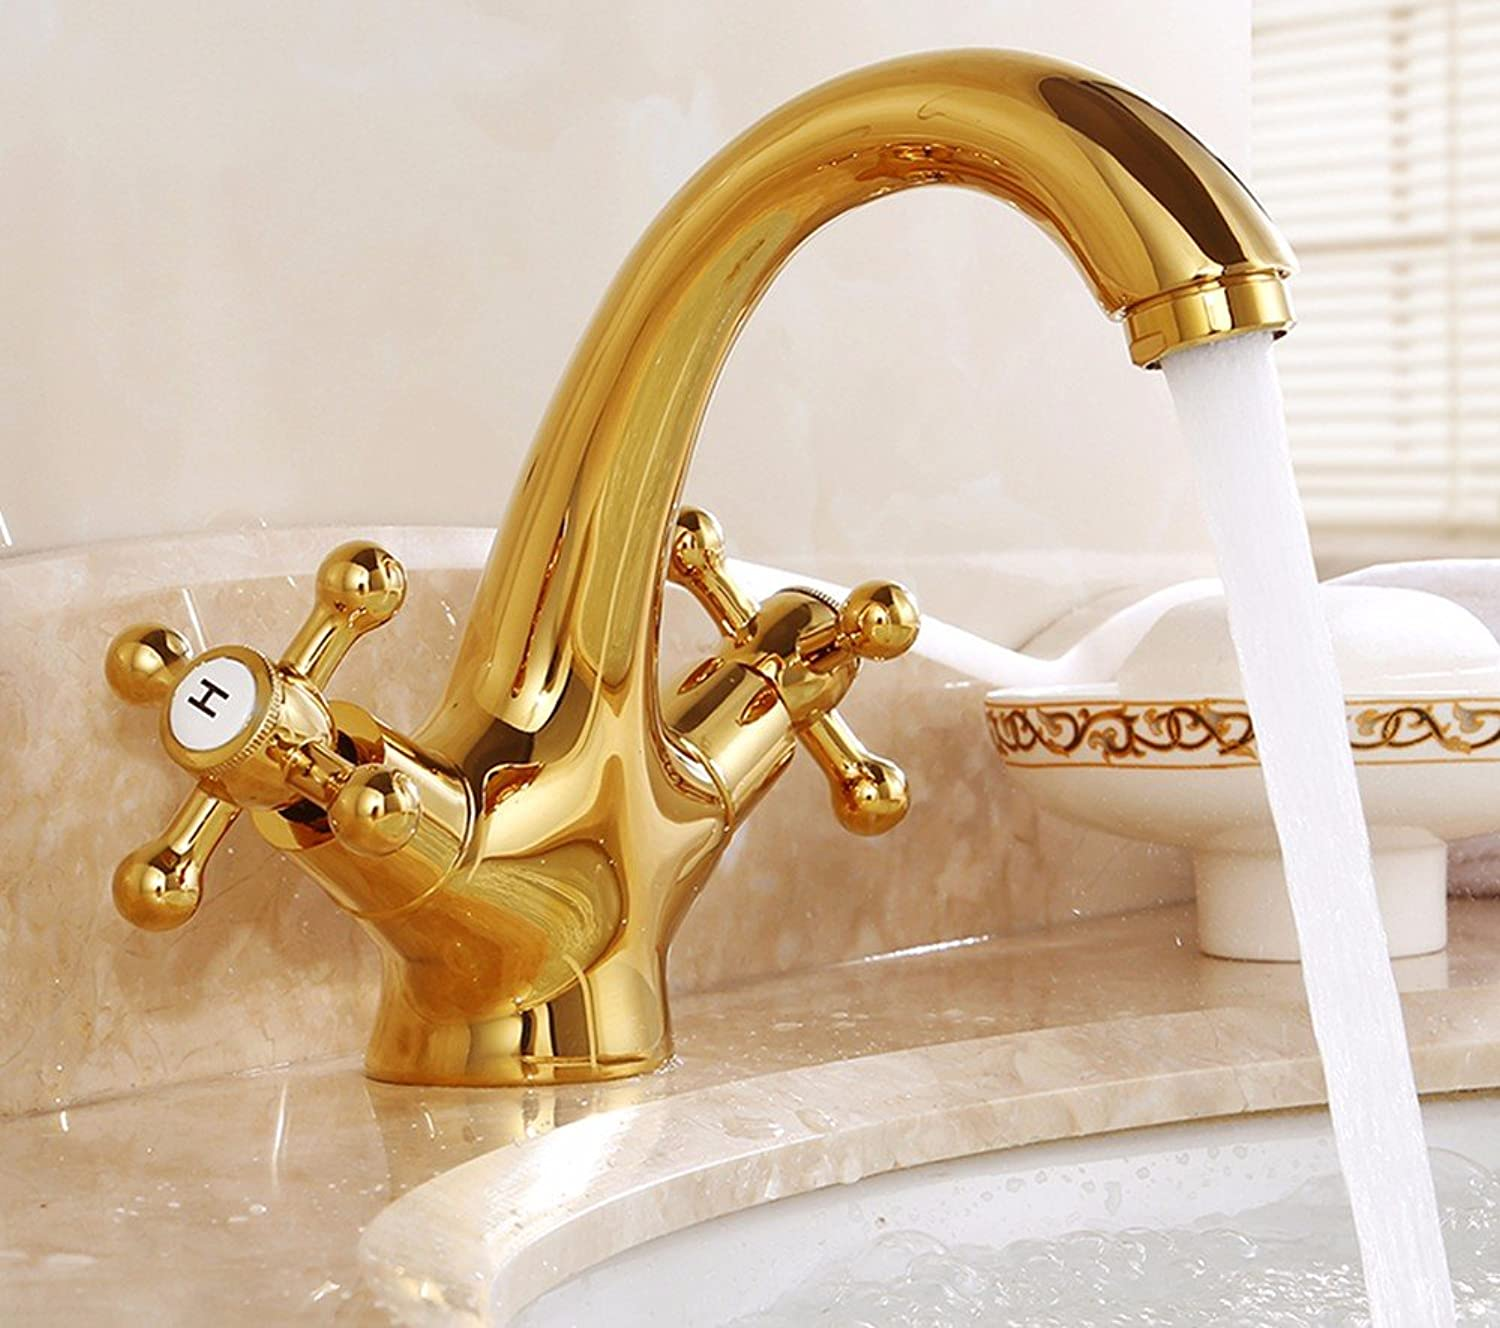 Hlluya Professional Sink Mixer Tap Kitchen Faucet Copper, hot and cold double, single hole, a vanity area with sink mixer 2